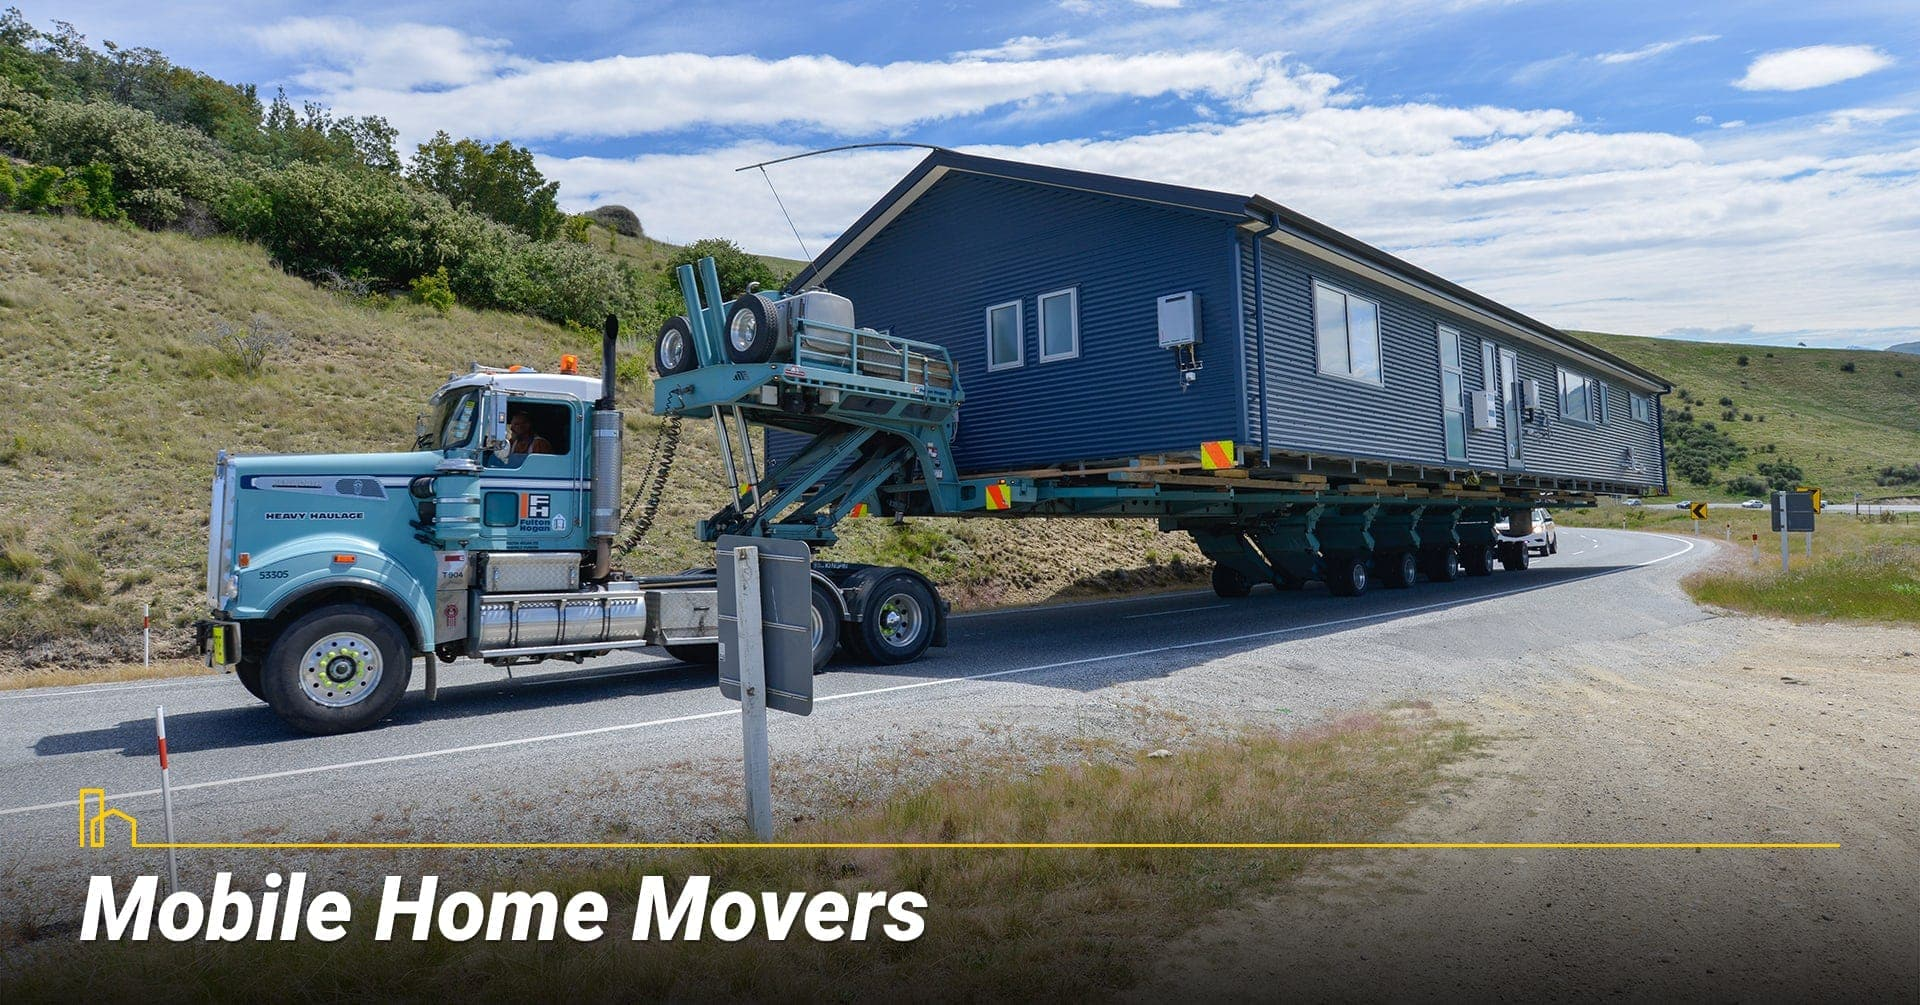 Mobile Home Movers, professional mobile home movers